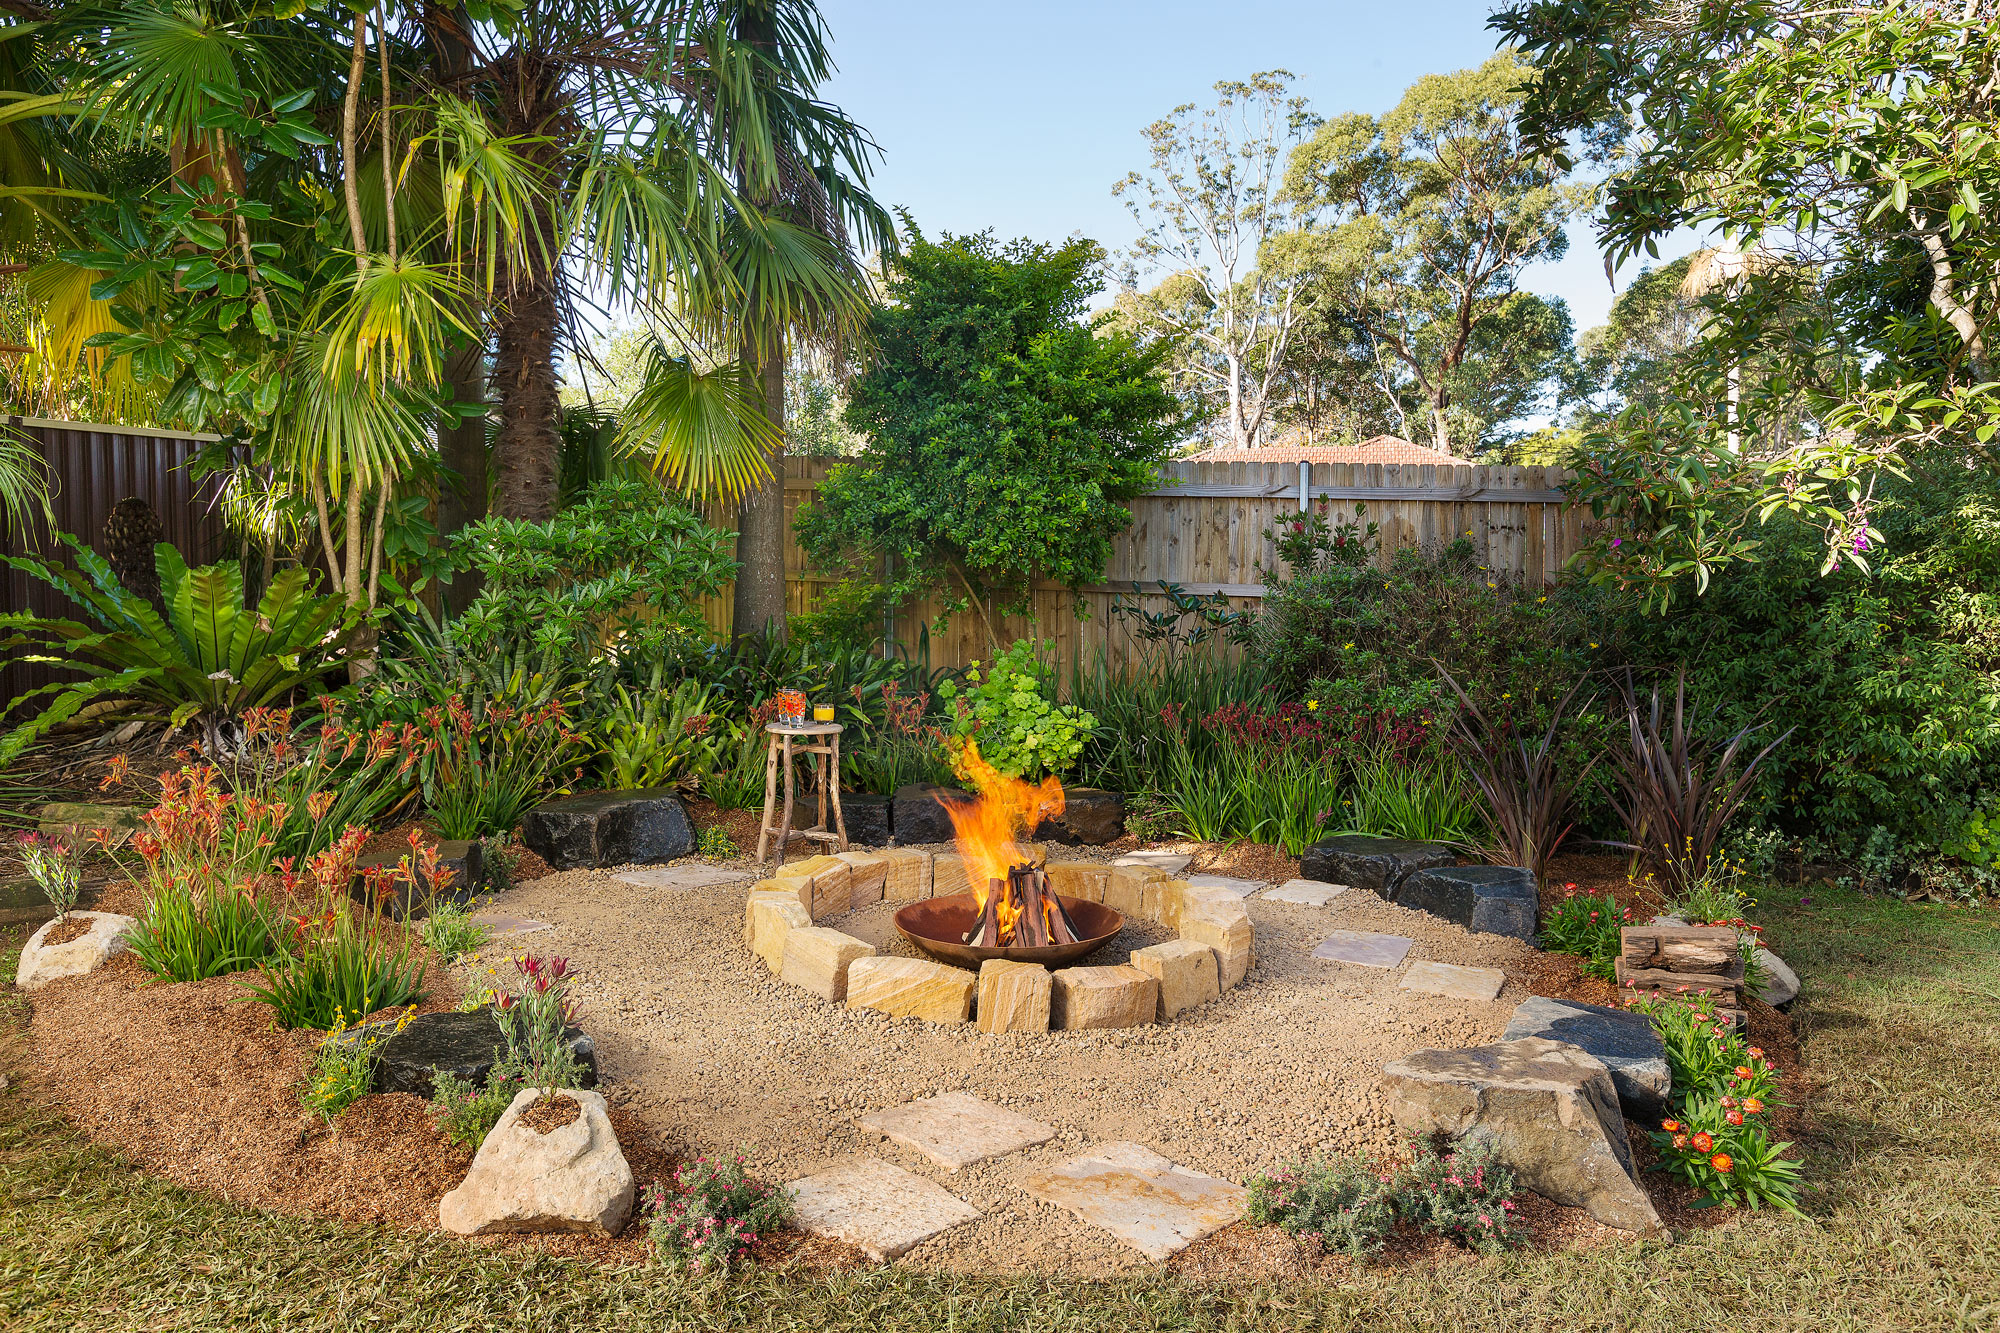 How To Make A Fire Pit Diy Gardening Craft Recipes Renovating Better Homes And Gardens